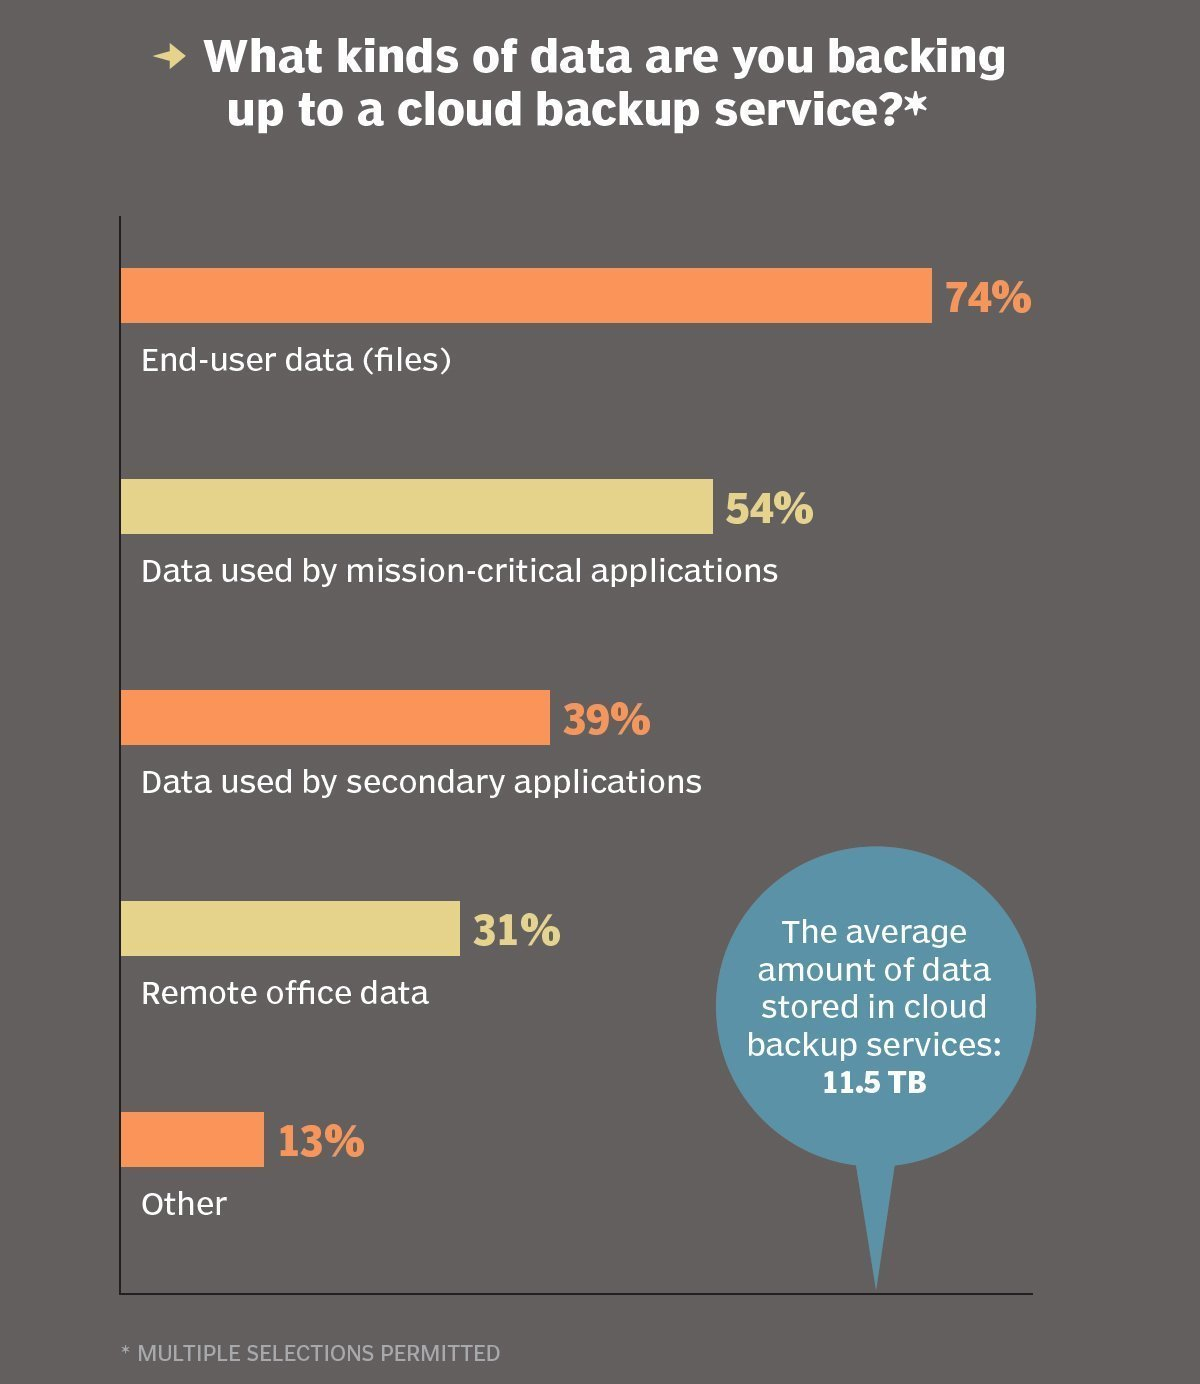 Data backed up to a cloud backup service